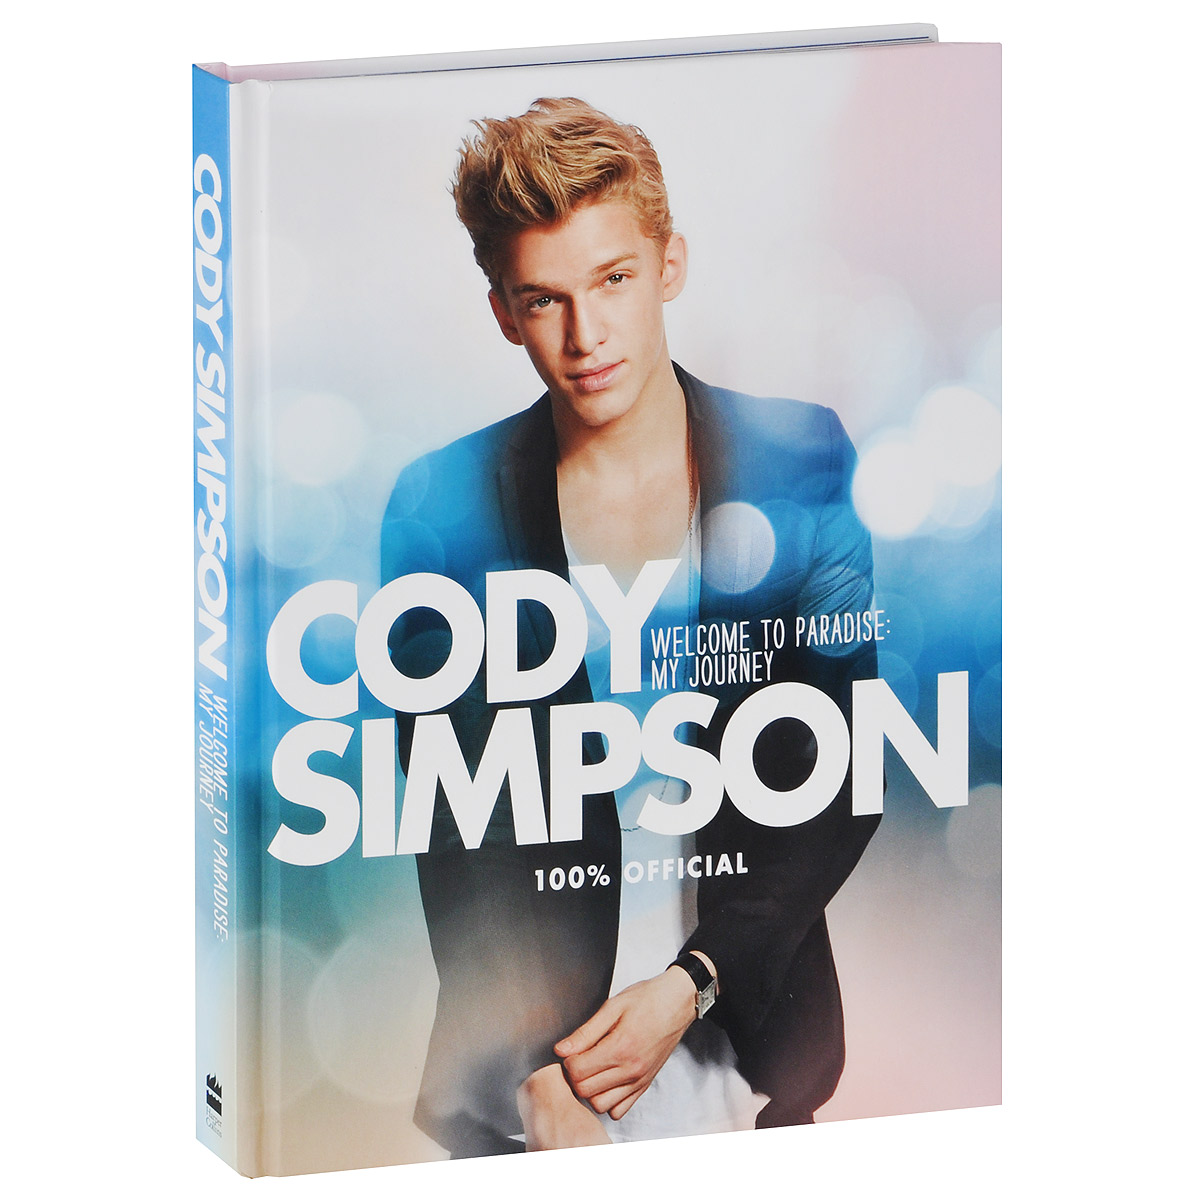 купить  Cody Simpson: Welcome to Paradise: My Journey  по цене 672.8 рублей